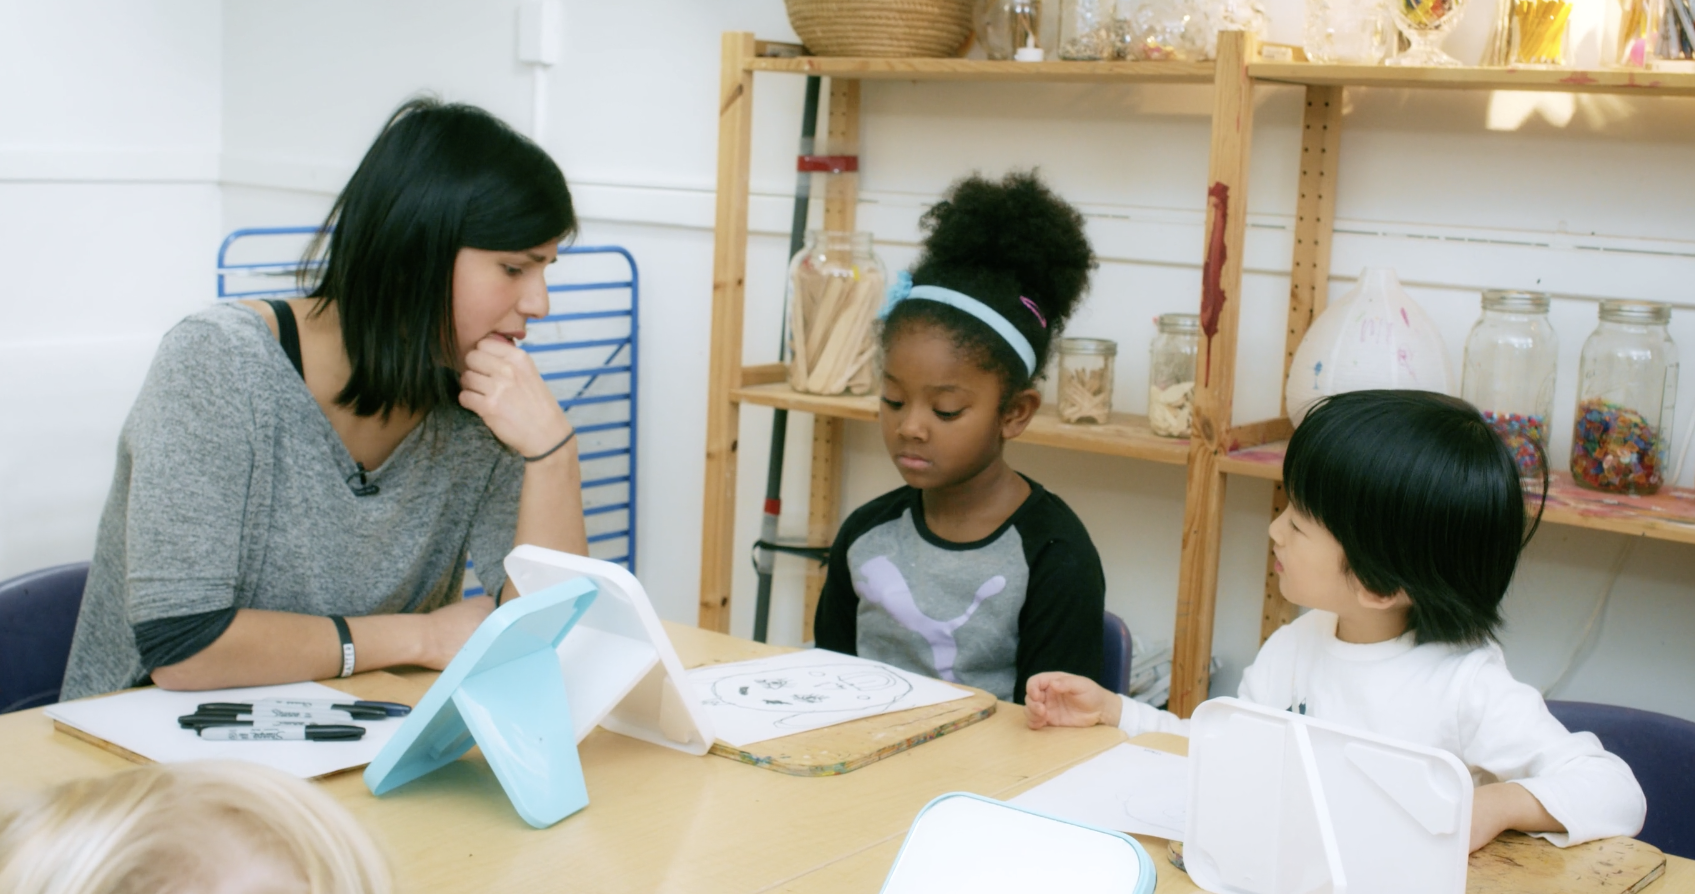 screenshot of film Anti-Bias Education in Action with educator talking with two children